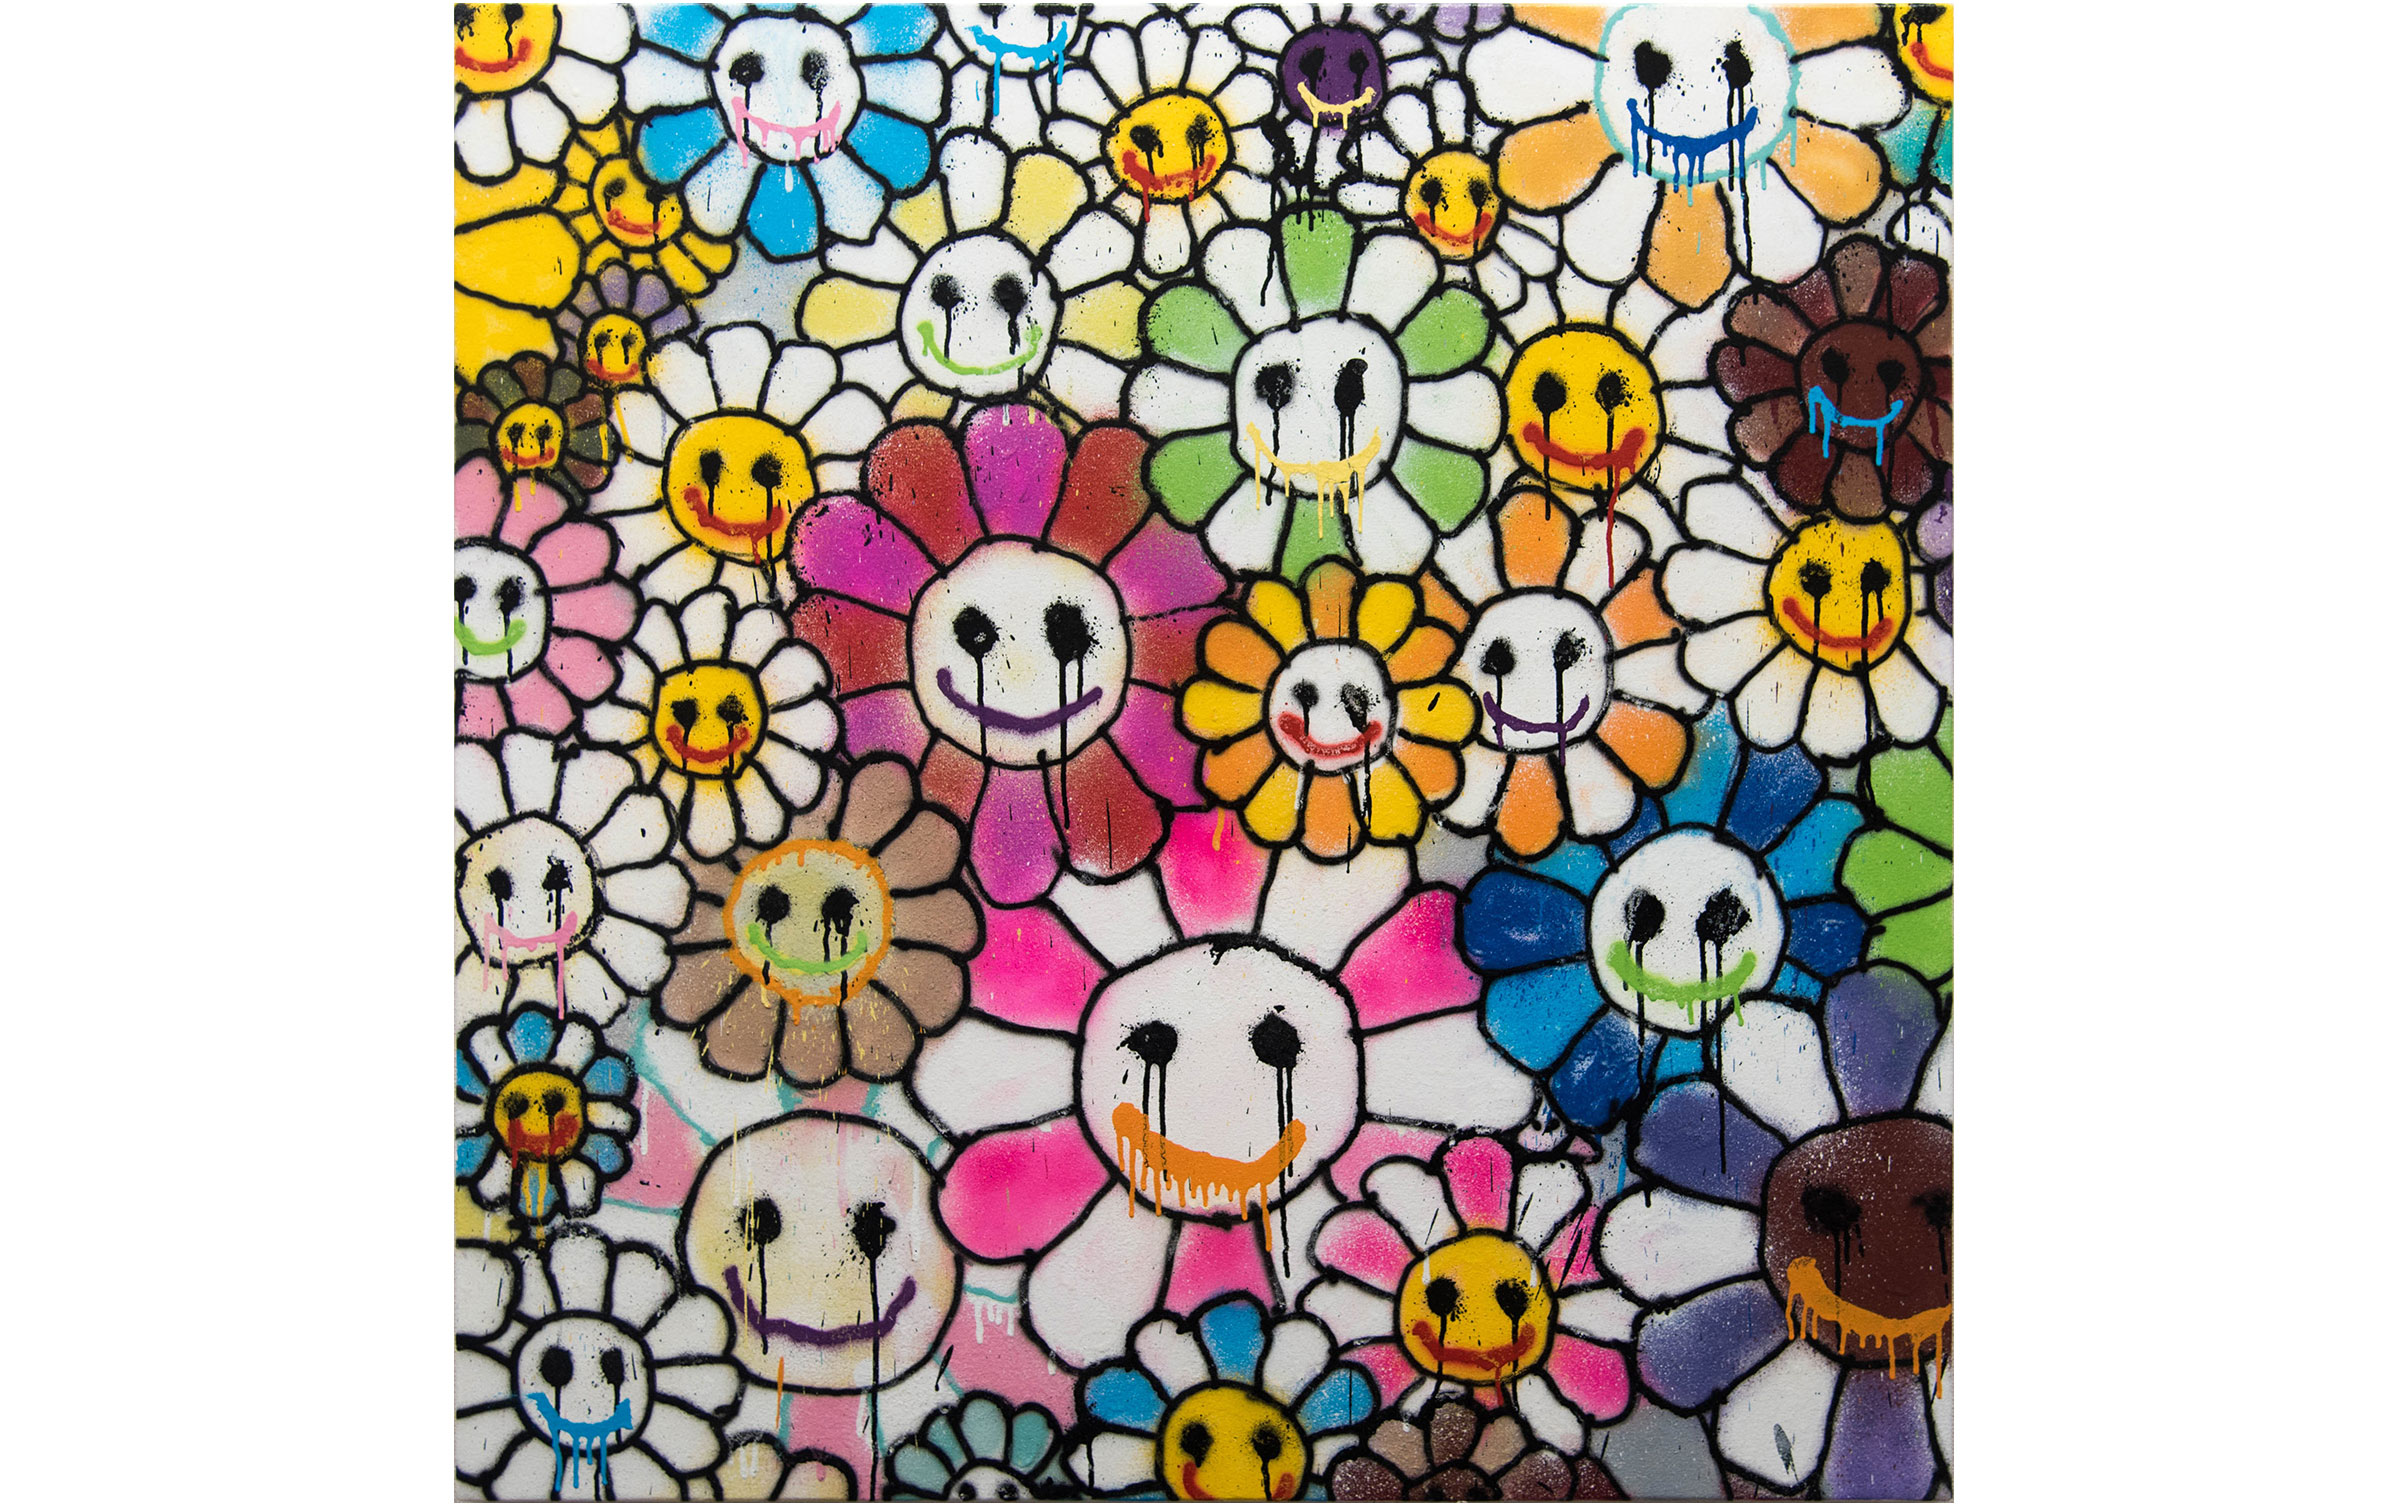 Homage to Takashi Murakami Flowers 1, 2016 1000x1000mm